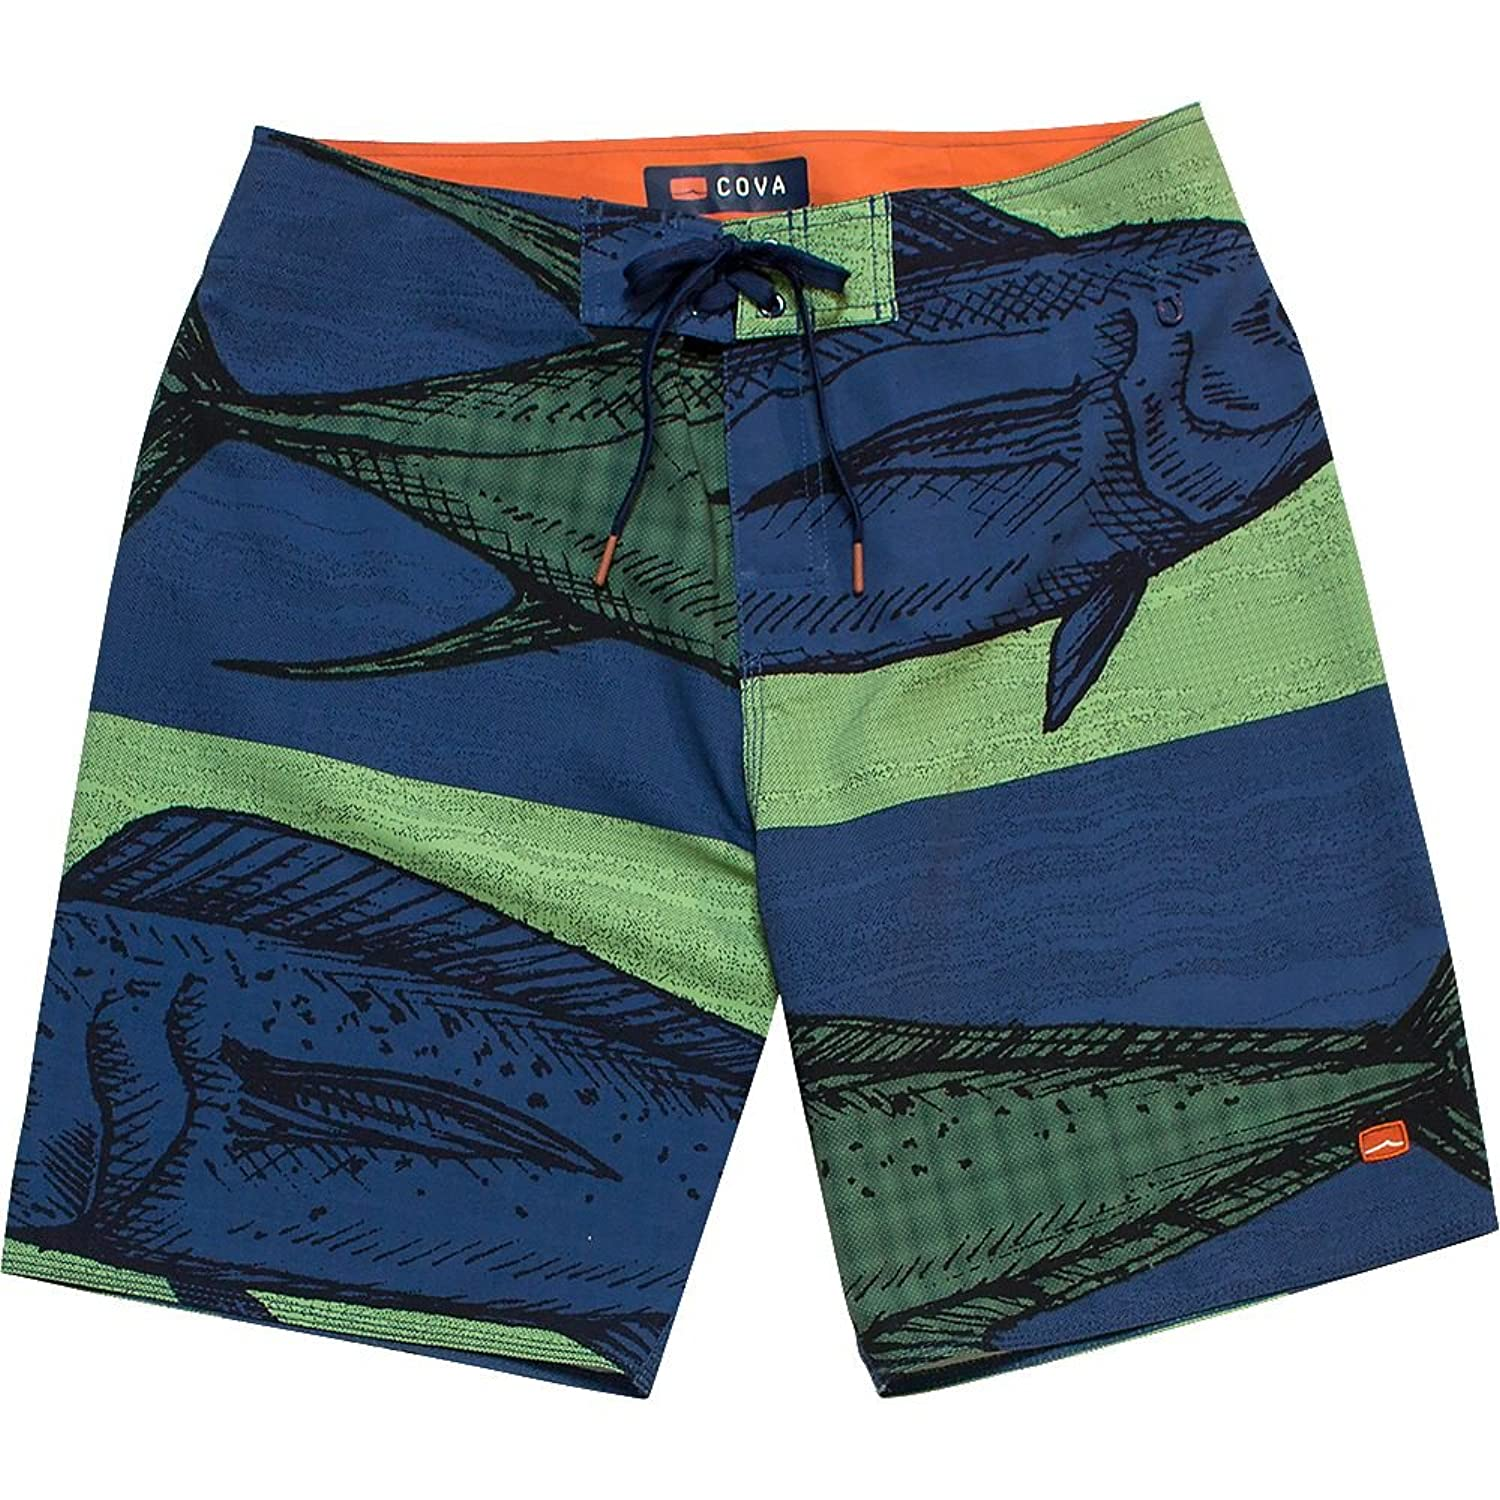 Cheap Cova Heads Or Tails Boardshorts for sale